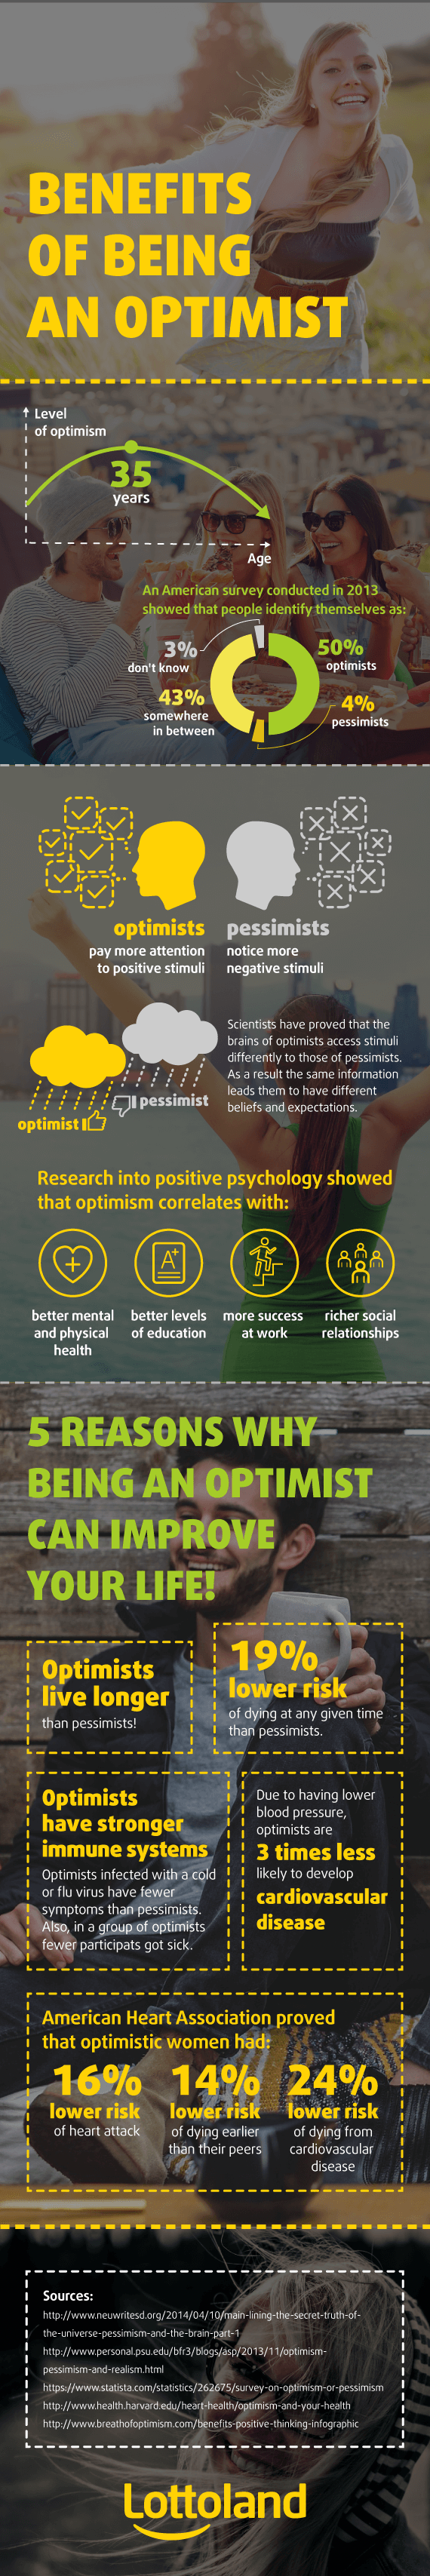 How to Become an Optimist in 5 Steps